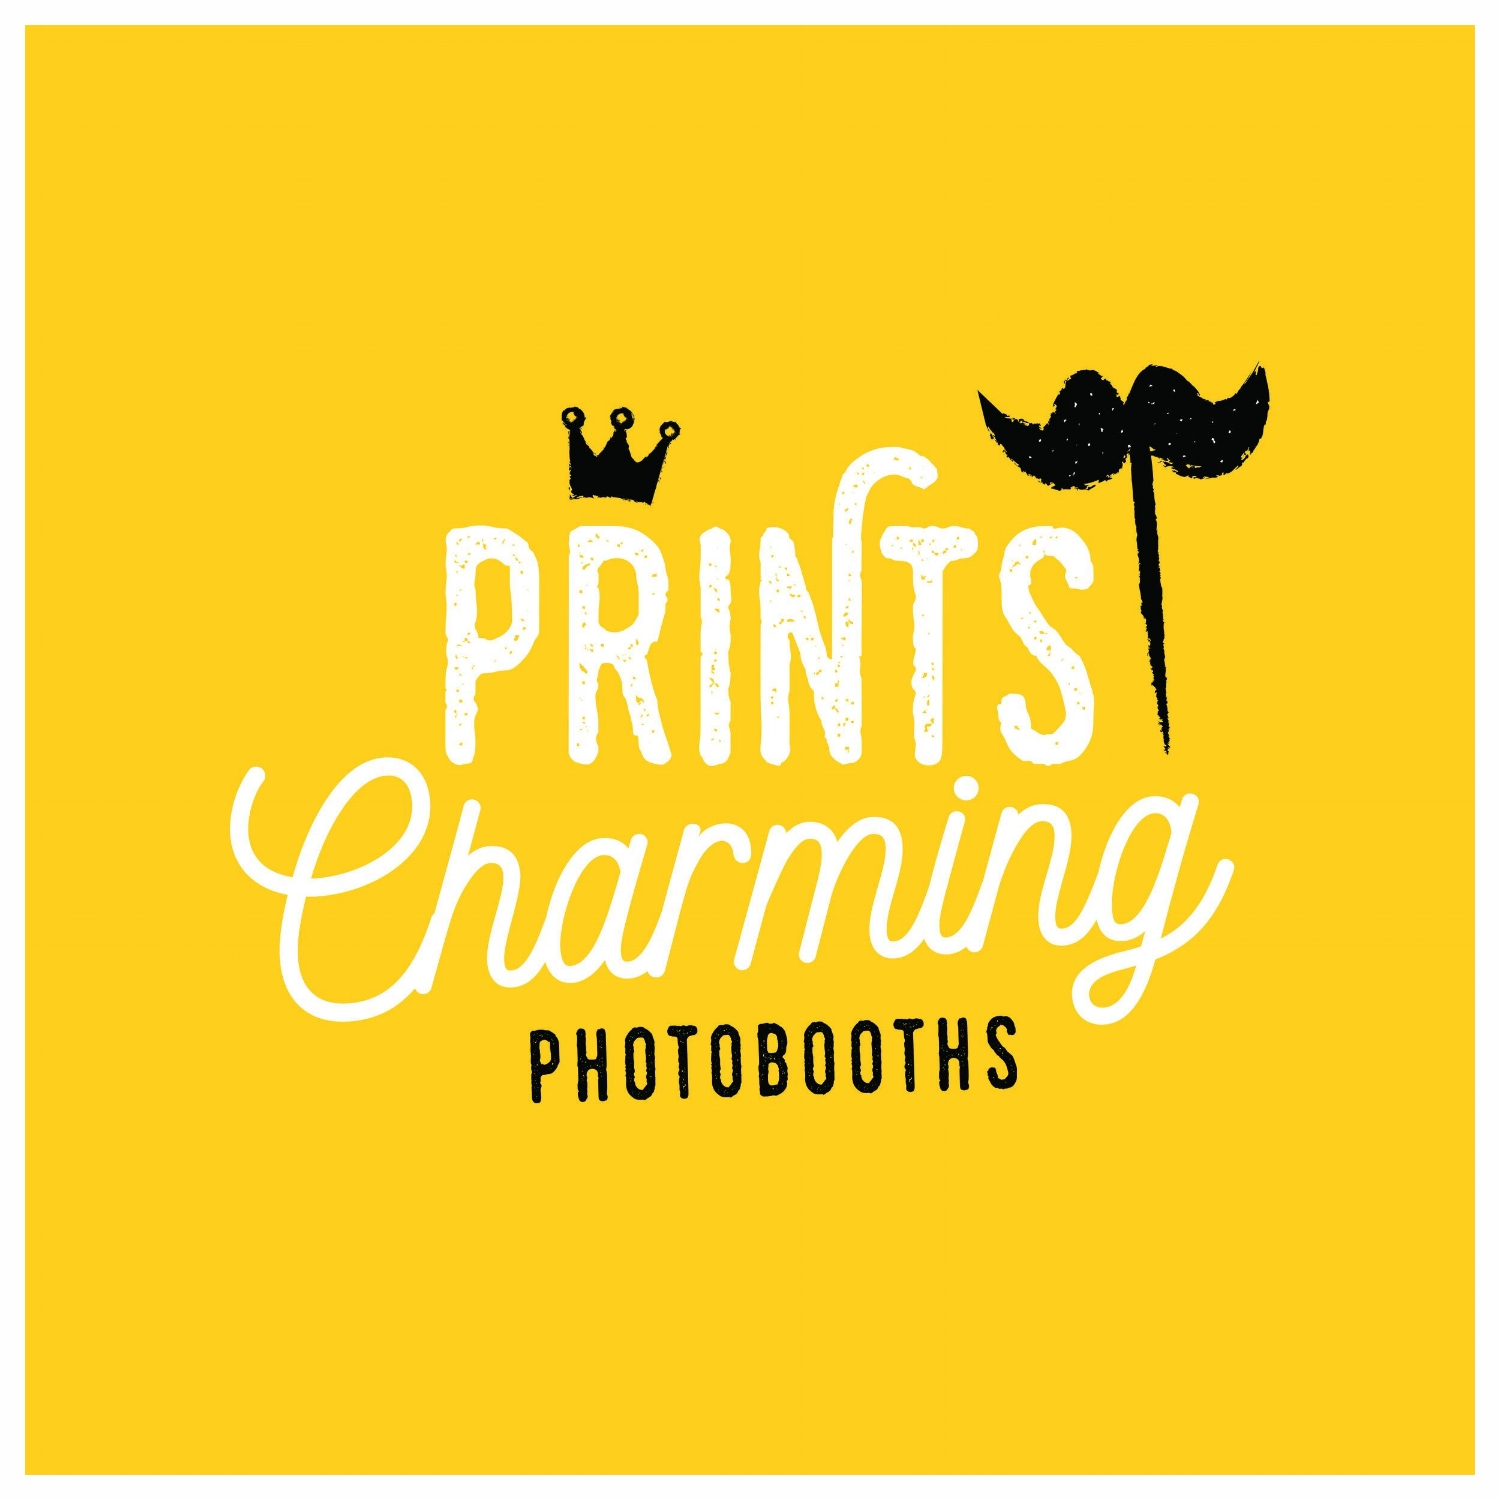 Prints Charming Photobooths